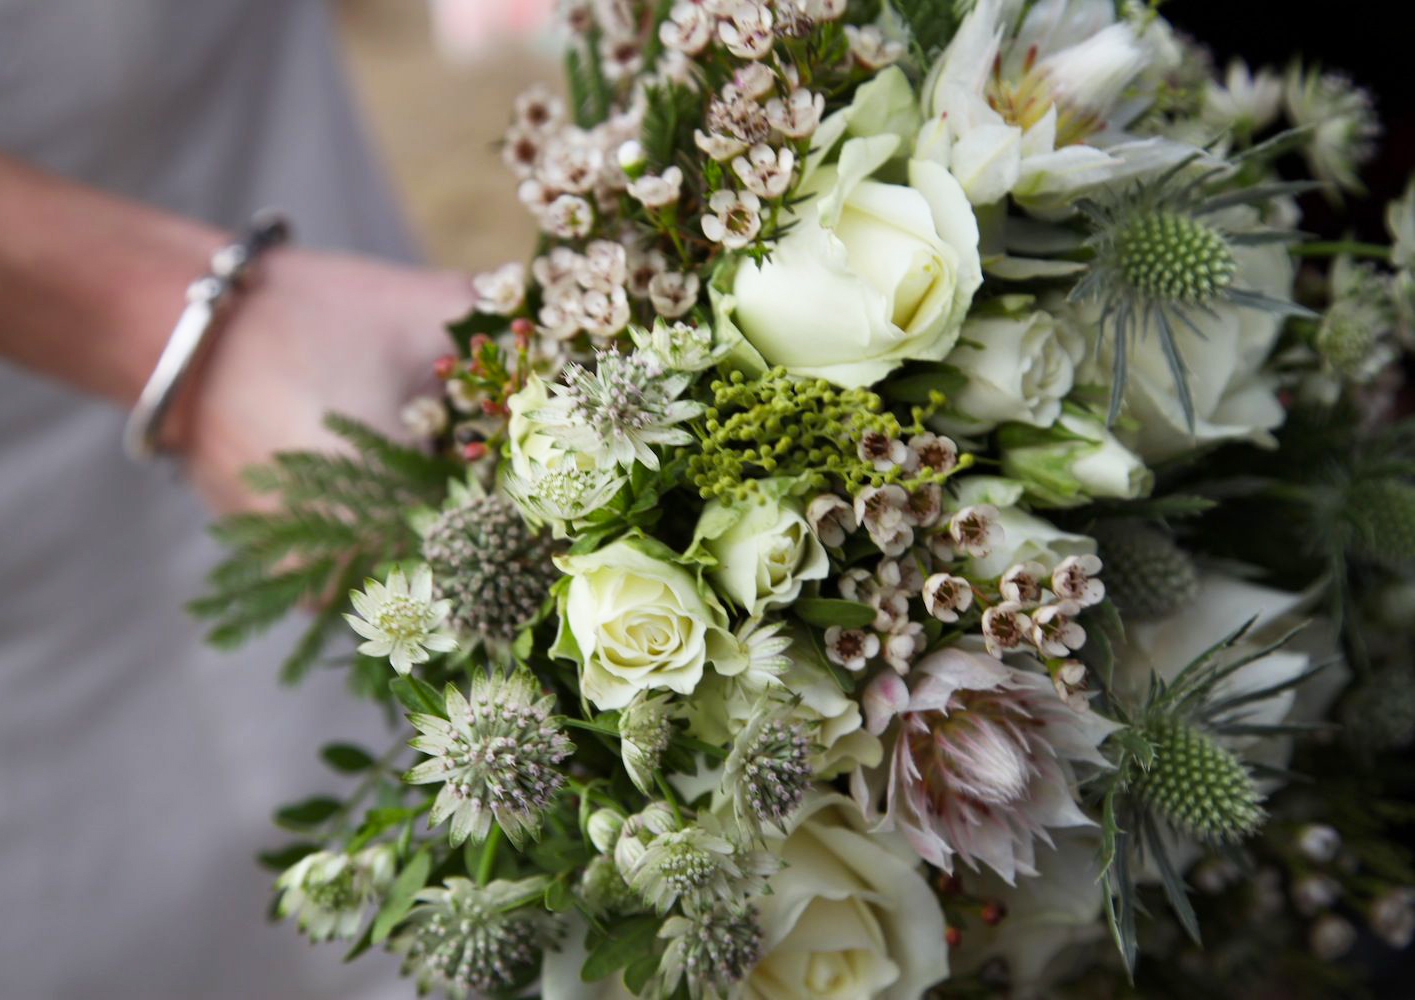 herbesfauves fleuriste bordeaux mariage wedding bouquet fleurs flowers mari e blanc vert white. Black Bedroom Furniture Sets. Home Design Ideas